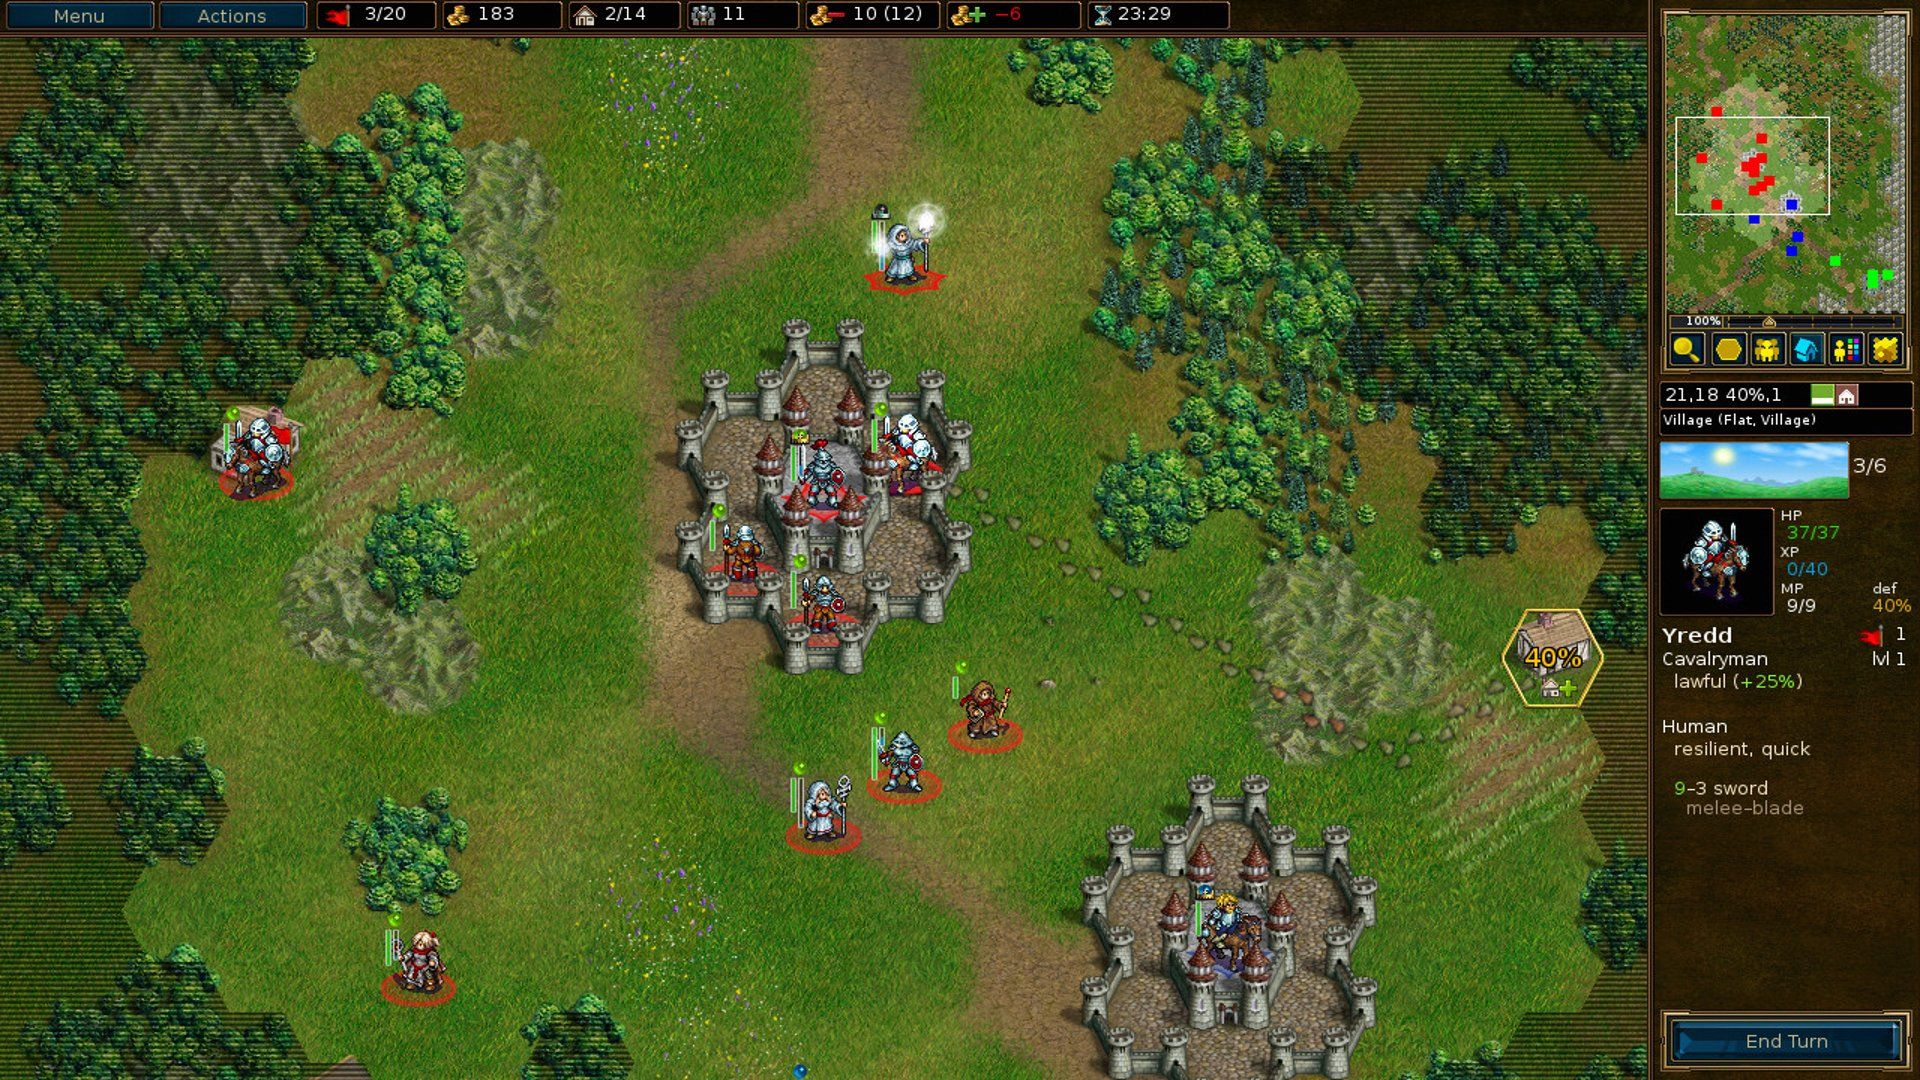 10 Best Free And Open Source Games For Linux - Prime Inspiration